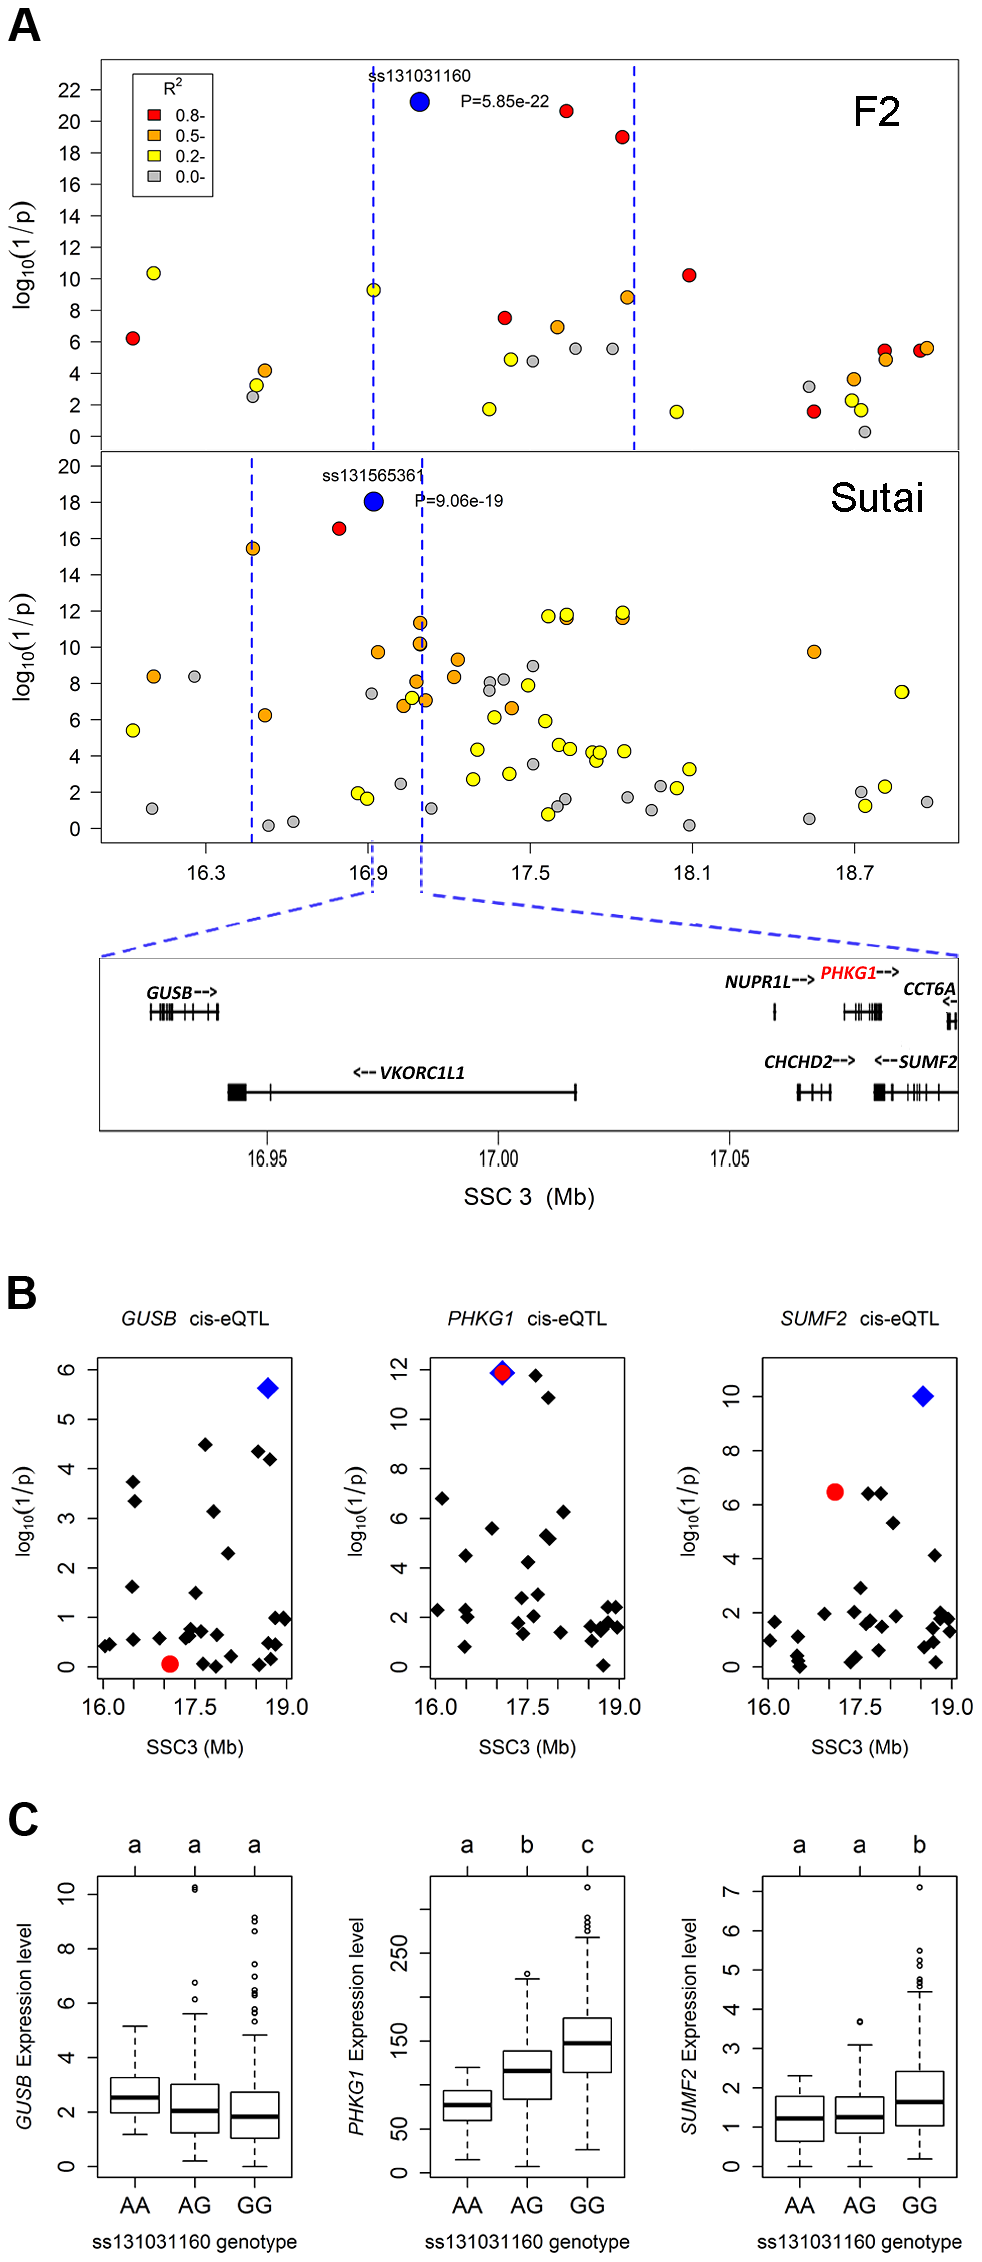 Prioritizing candidate genes by the colocalization between pQTL and eQTL.